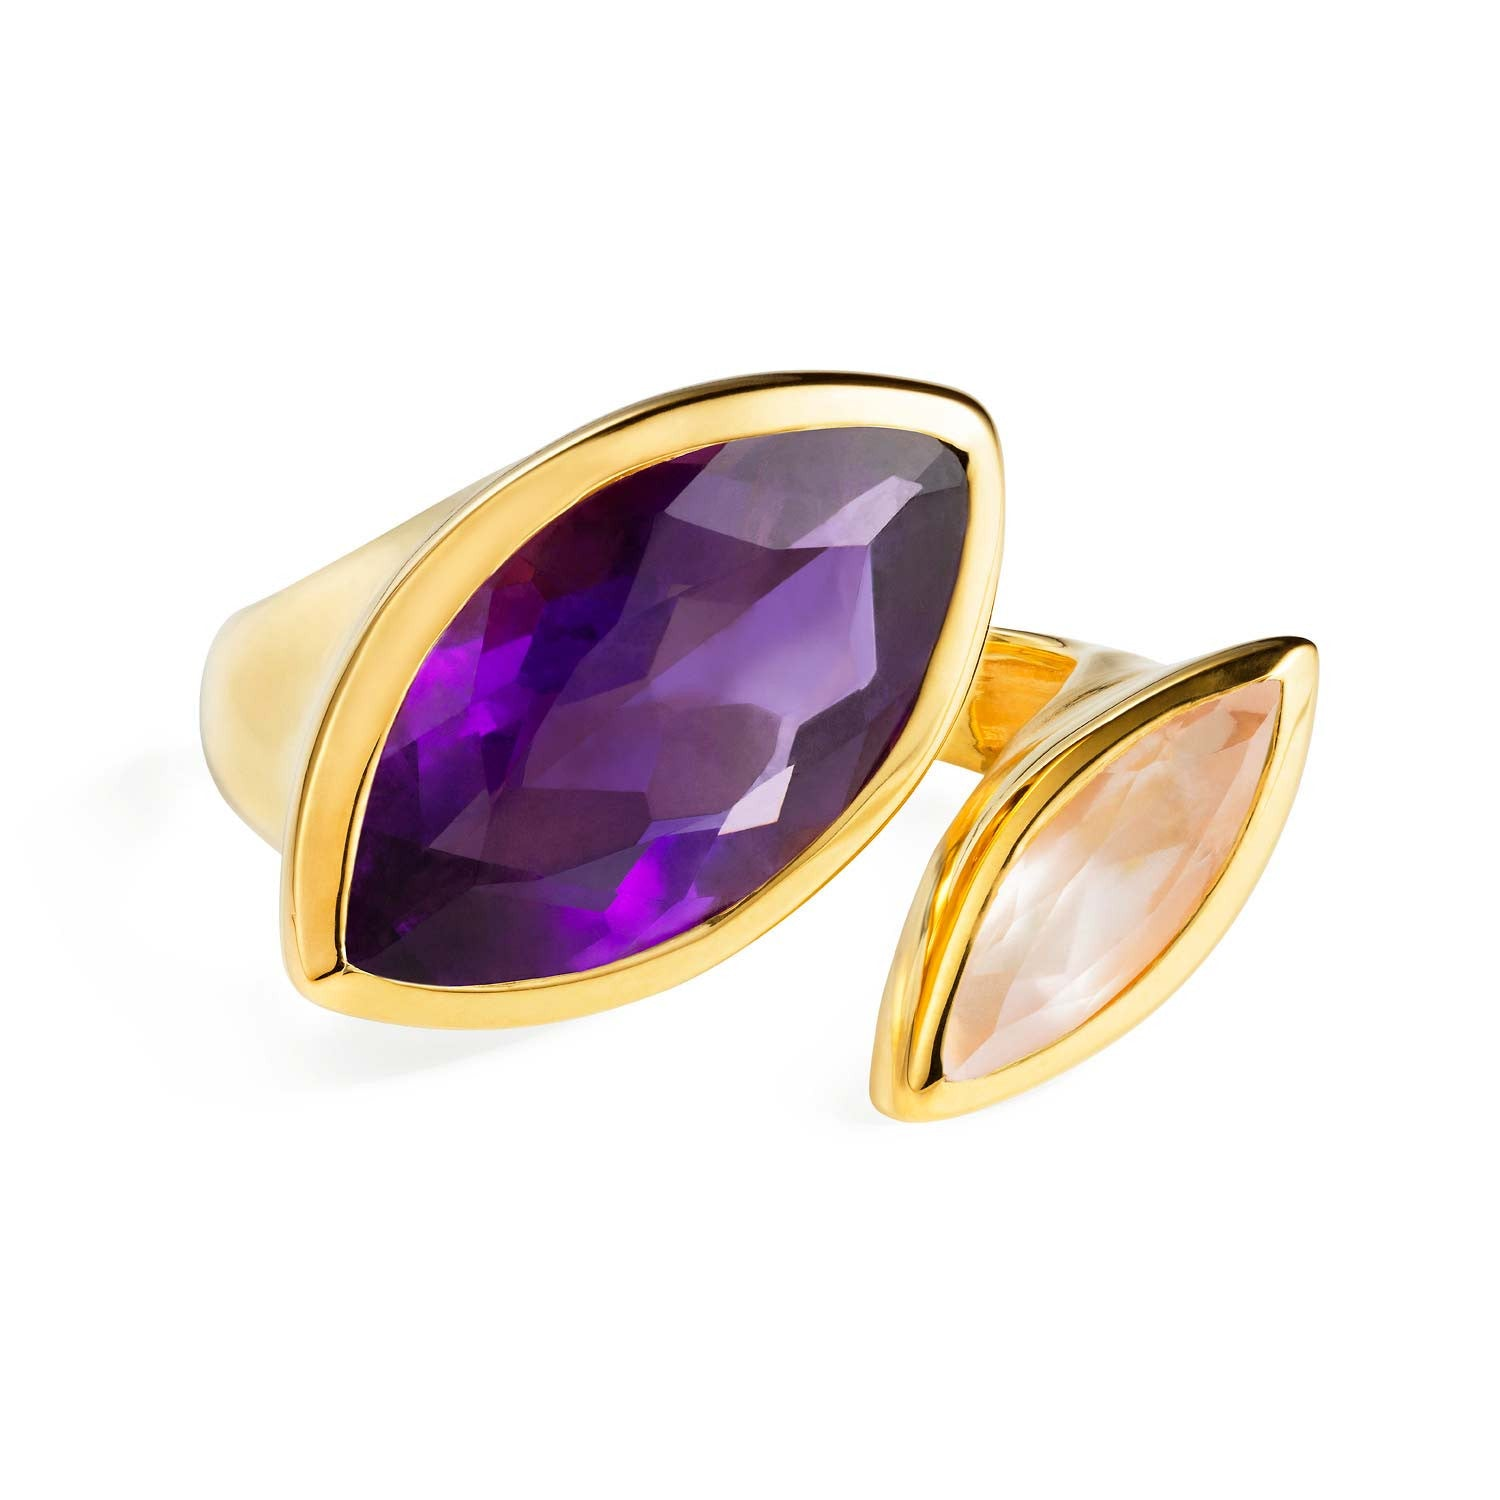 Gold vermeil cocktail ring, Purple Amethyst, Rose Quartz gemstone, geometric, unique British design